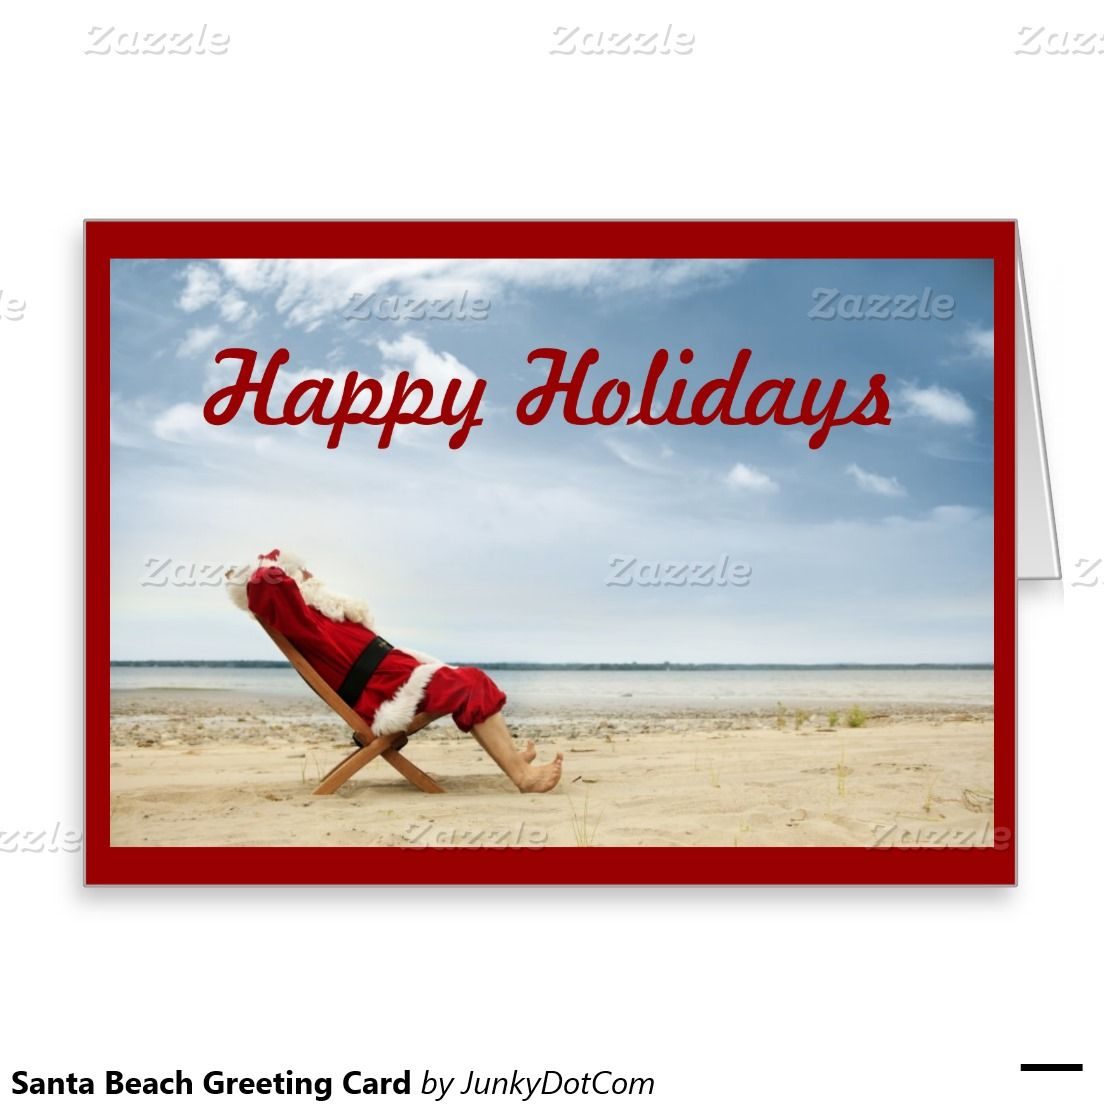 Santa beach greeting card nov 30 cyber monday 2016 best explore beach christmas cards beaches in florida and more kristyandbryce Gallery